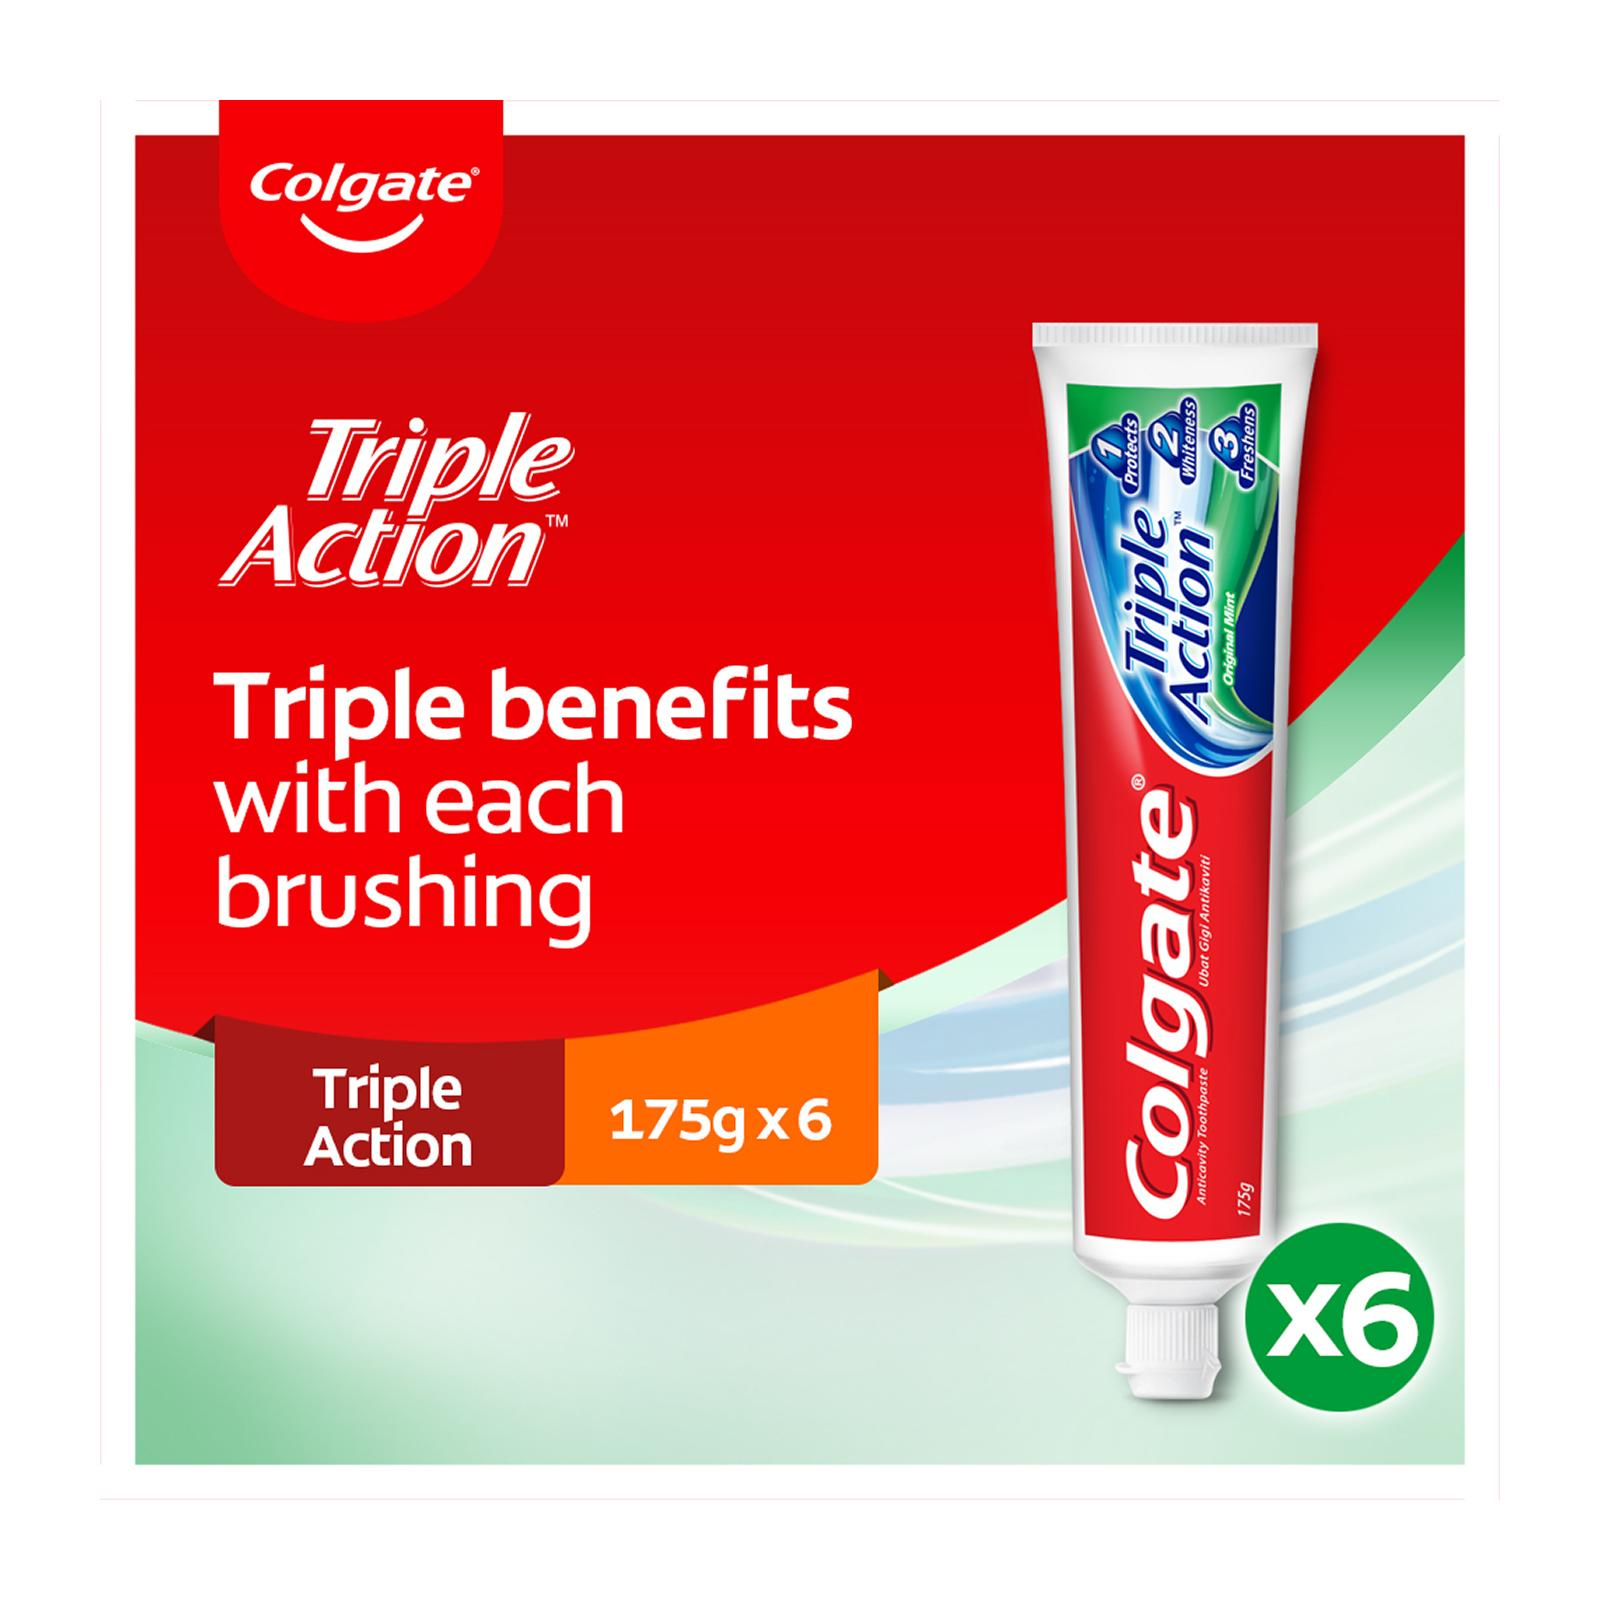 Colgate Triple Action Toothpaste Valuepack 175g x 2 [Bundle of 3]